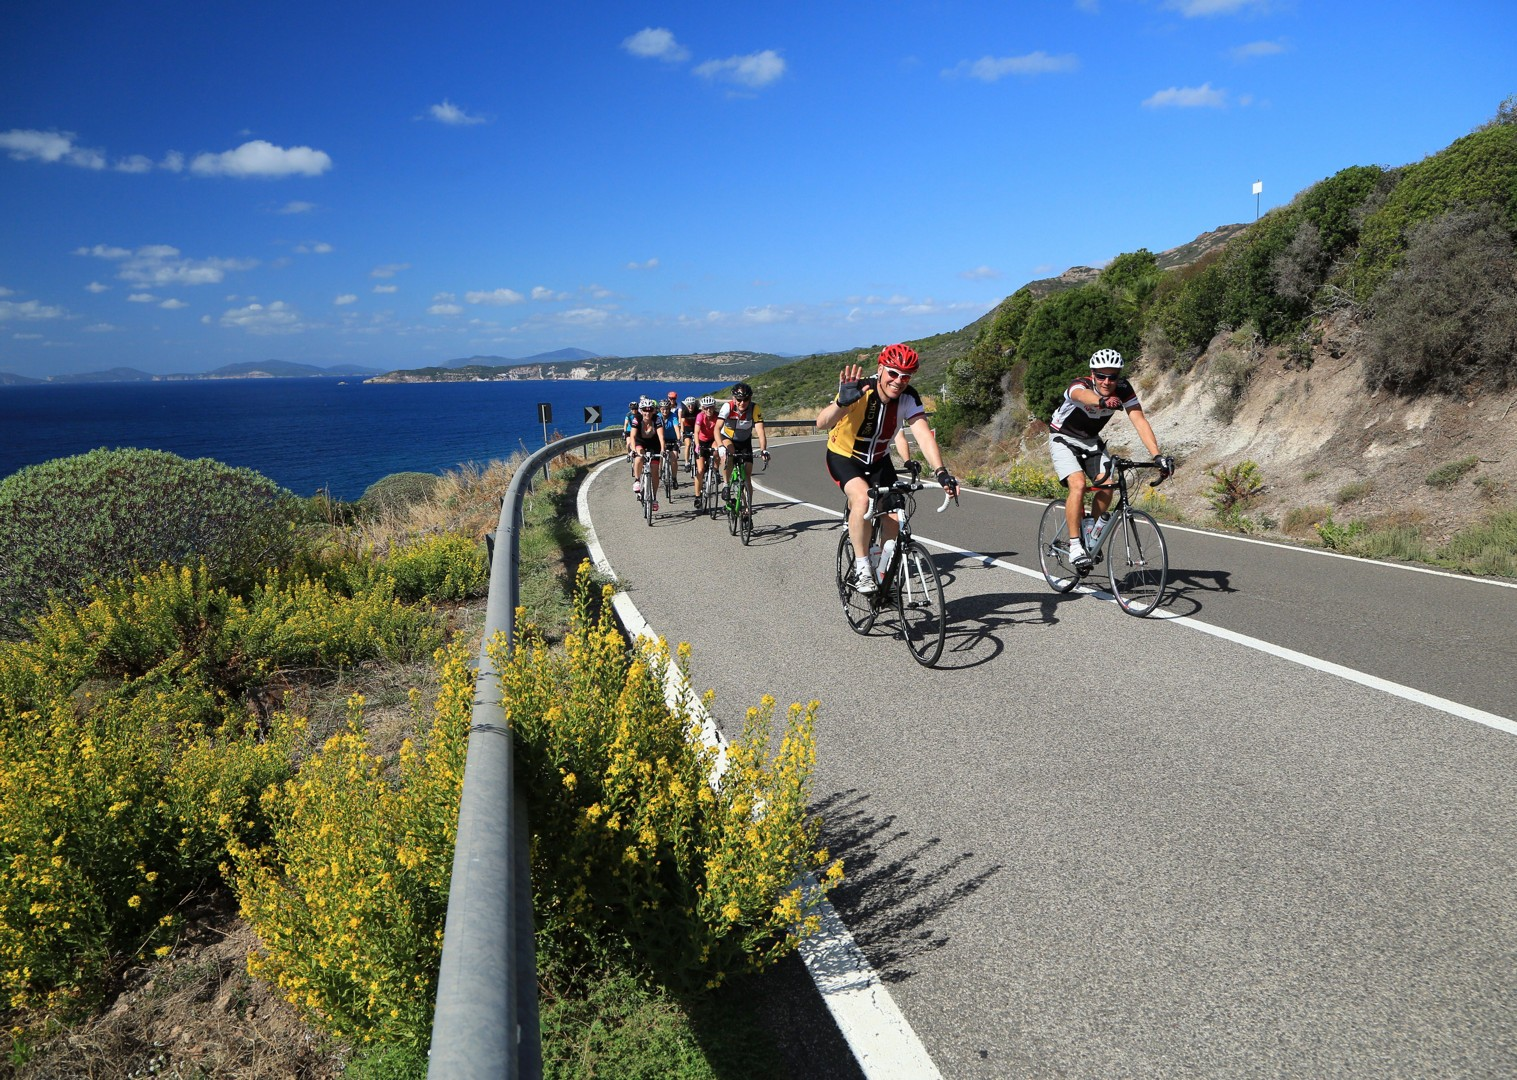 Guided-Road-Cycling-Holiday-Coastal-Explorer-Sardinia.jpg - Italy - Sardinia - Coastal Explorer - Guided Road Cycling Holiday - Road Cycling